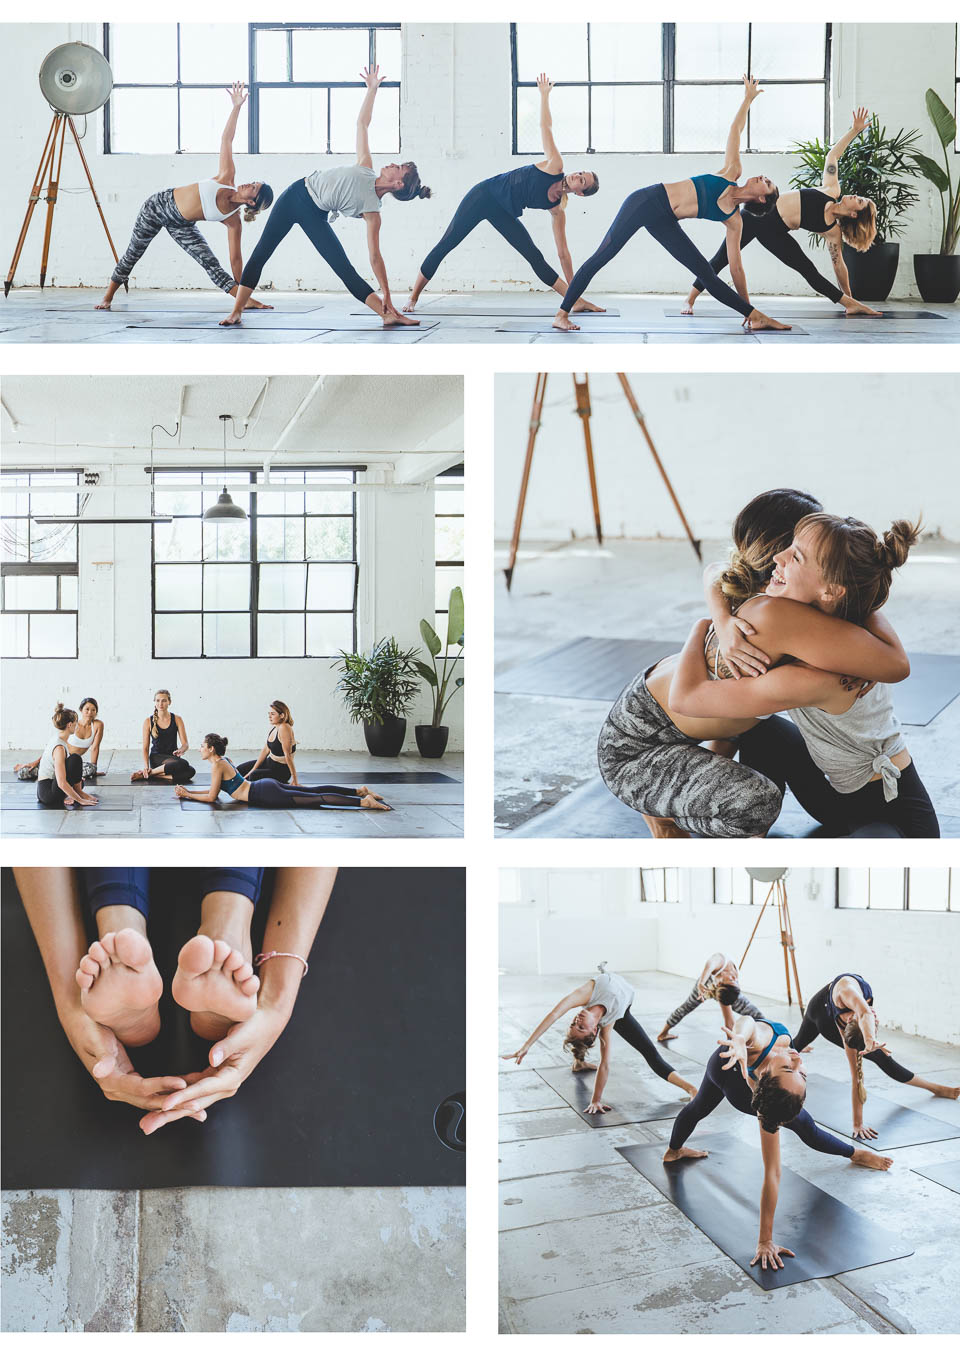 LULU_WEB_2017Q1_MK_Autumn_wk02_Tribal_Yoga_w_6484-Edit-WEBmed-960px-2.jpg